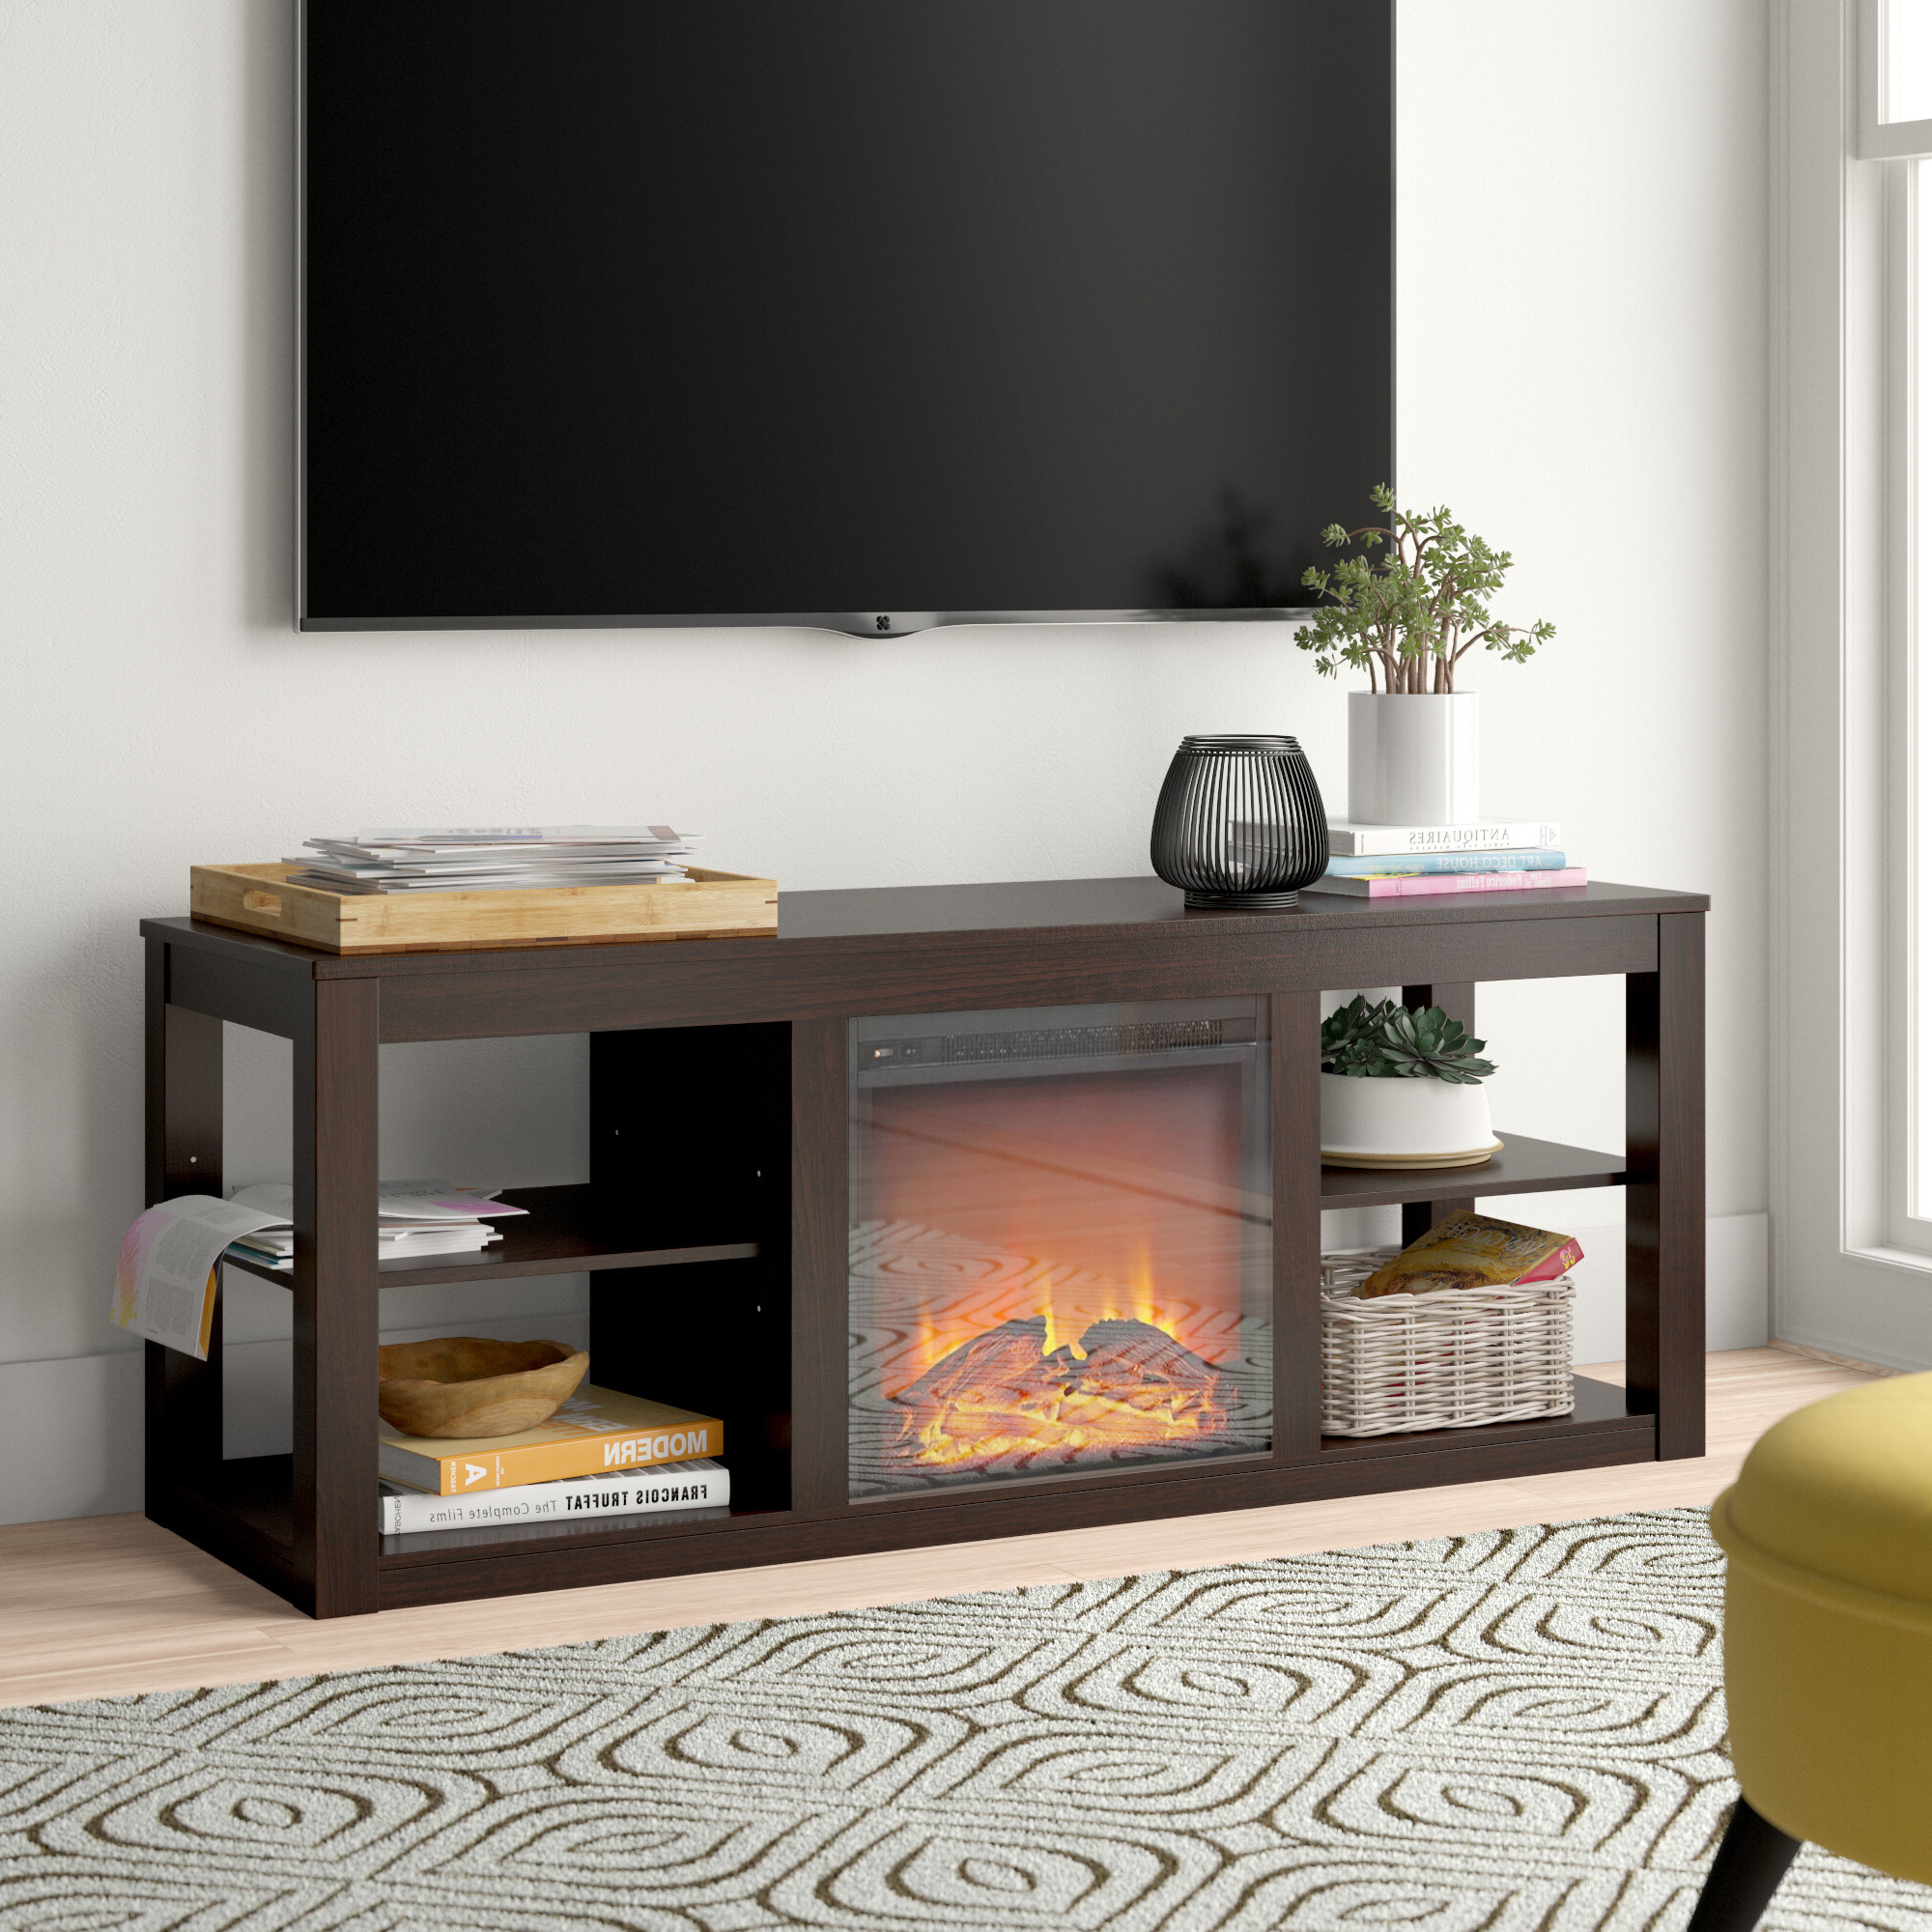 """Trendy 65 Inch Tv Stand With Fireplace – Ideas On Foter With Chicago Tv Stands For Tvs Up To 70"""" With Fireplace Included (View 9 of 25)"""